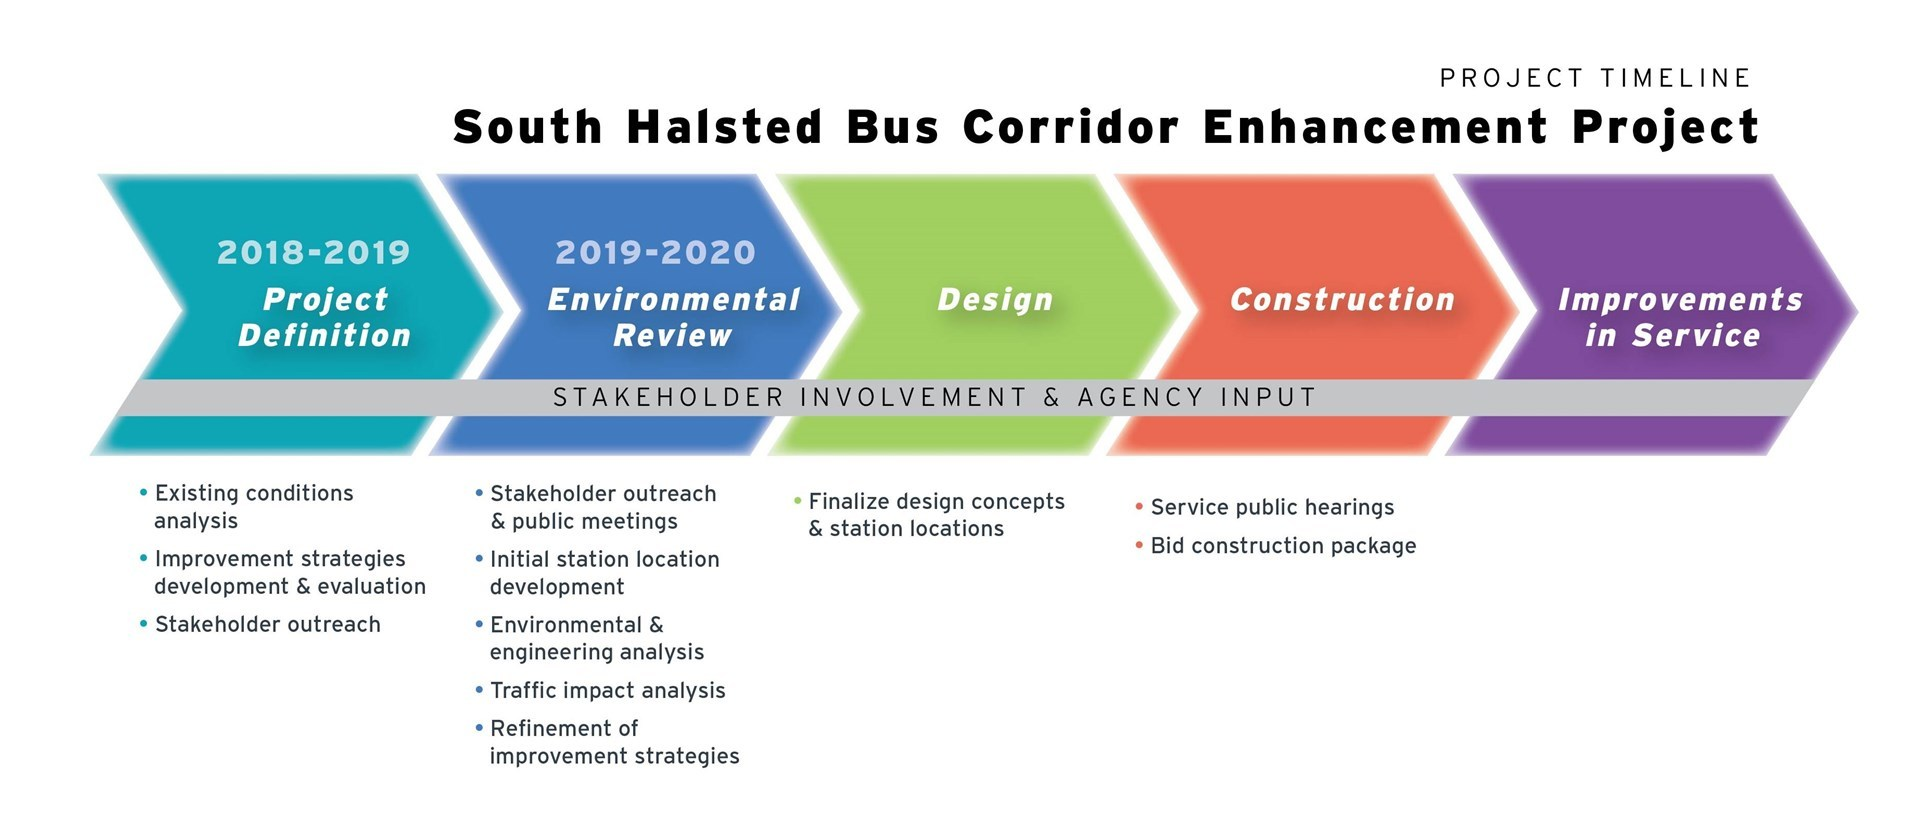 South Halsted Bus Corridor Project Timeline